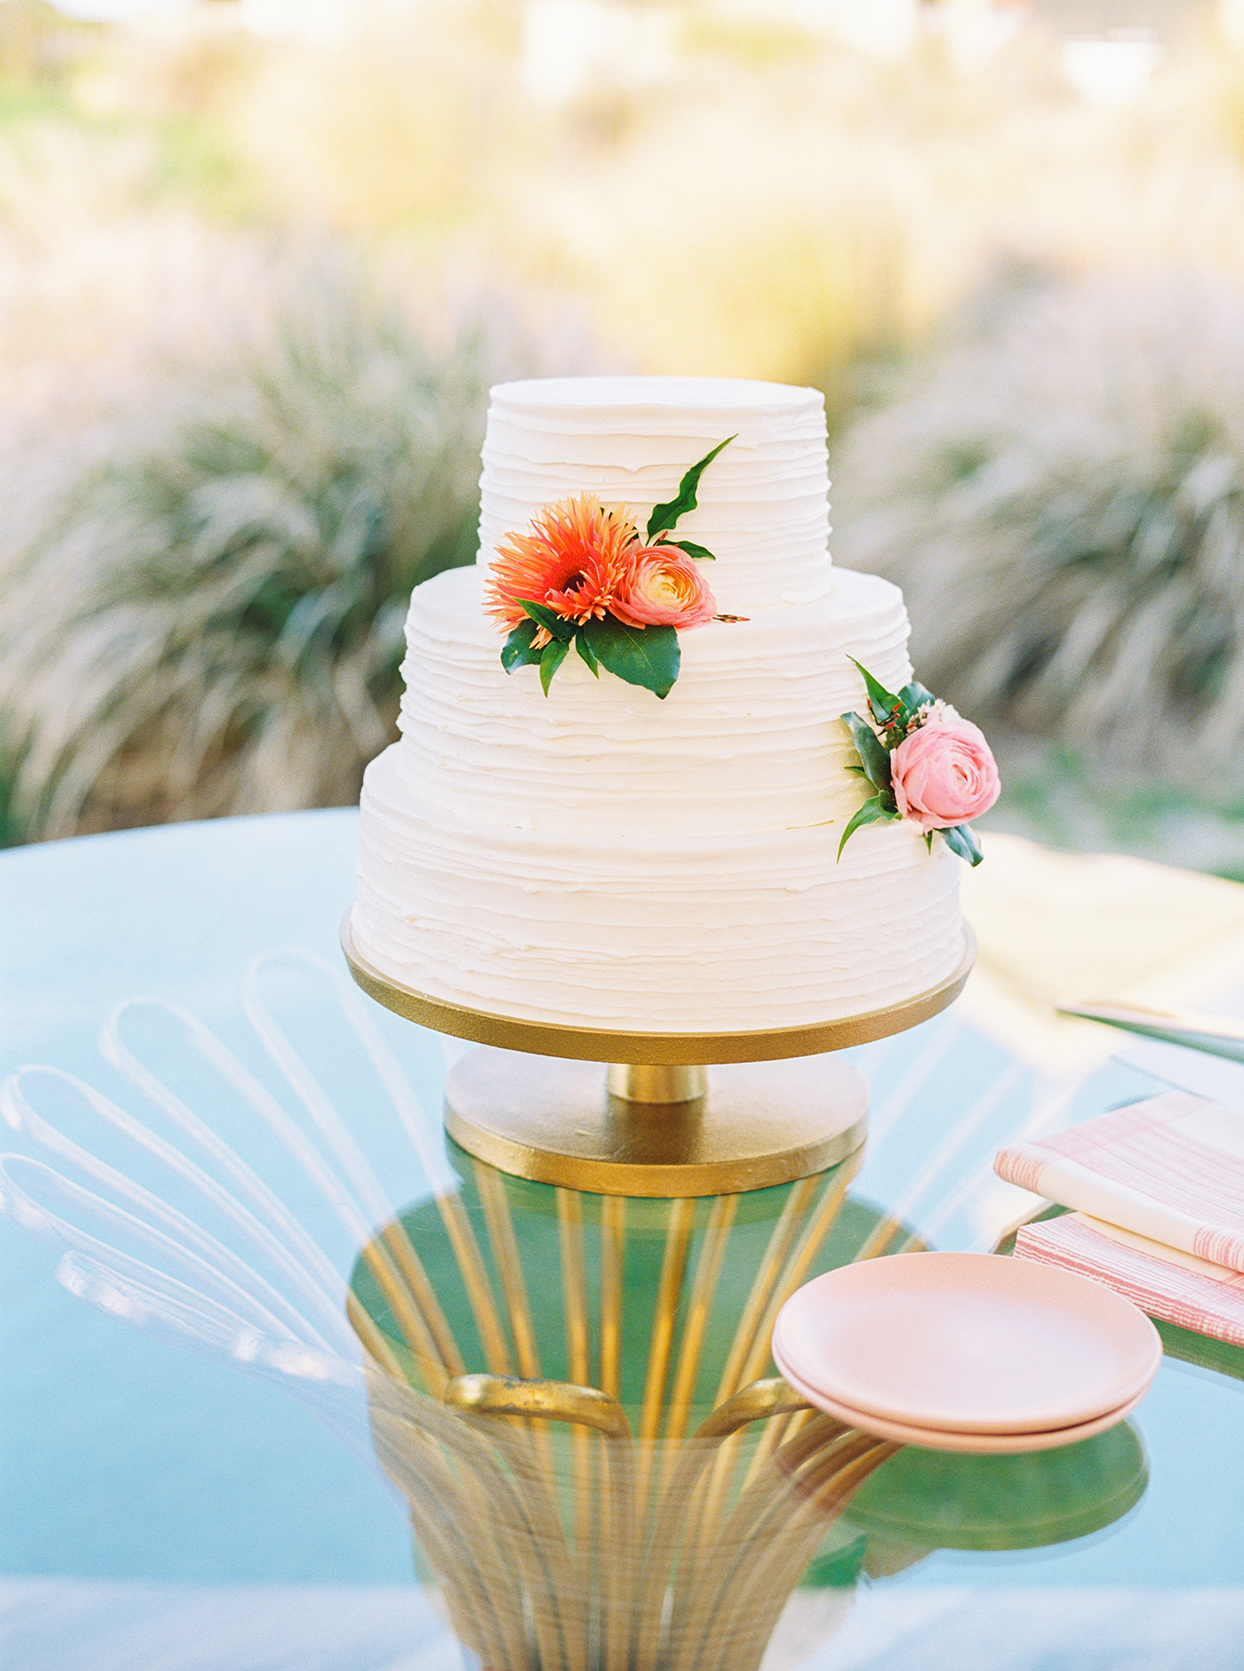 lauren dan simple white wedding cake with pink flowers